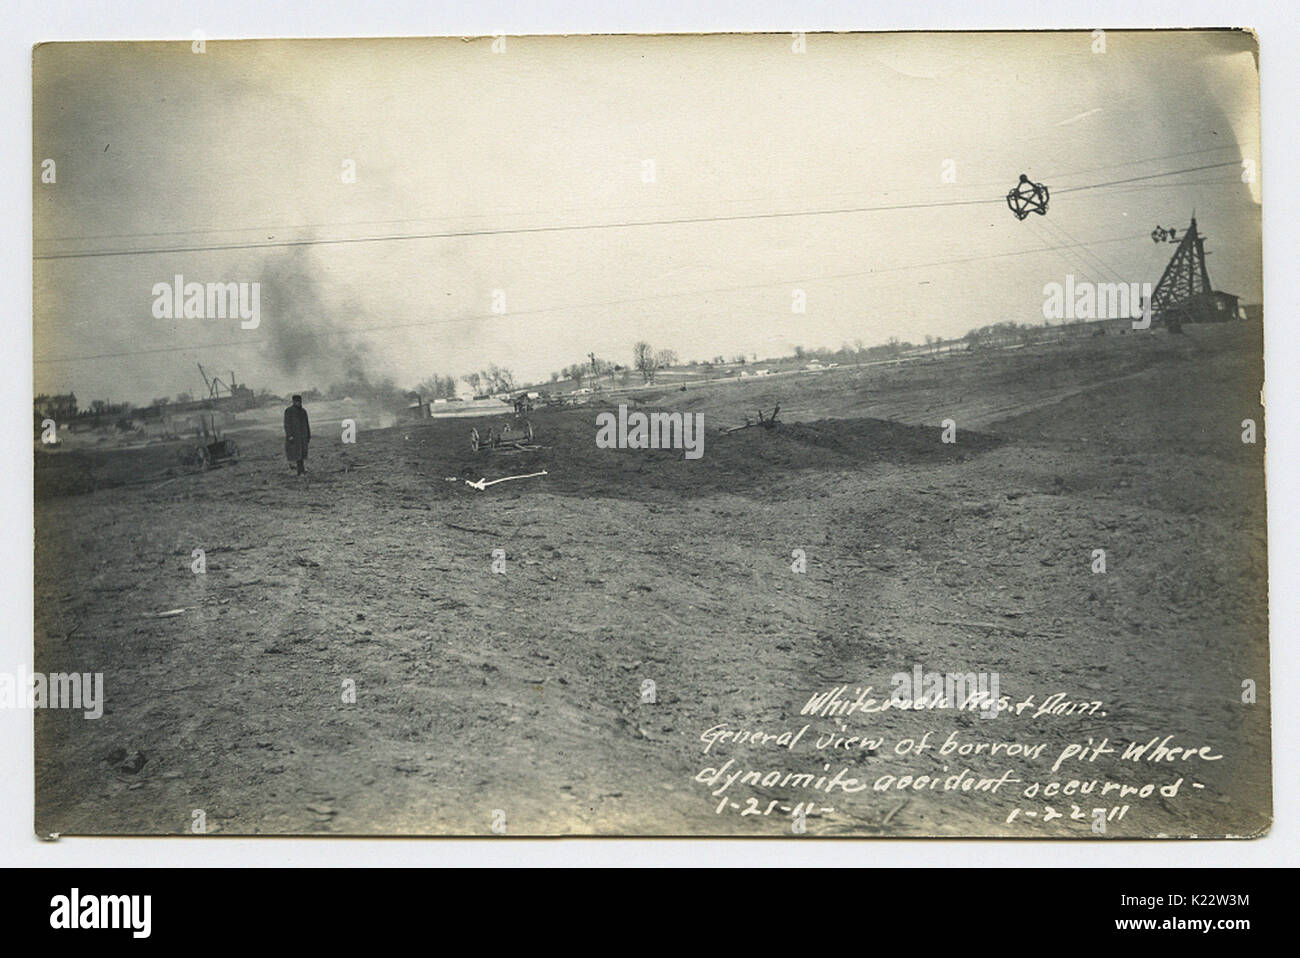 White rock Res. & Dam. General view of borrow pit where dynamite accident occurred - Stock Image